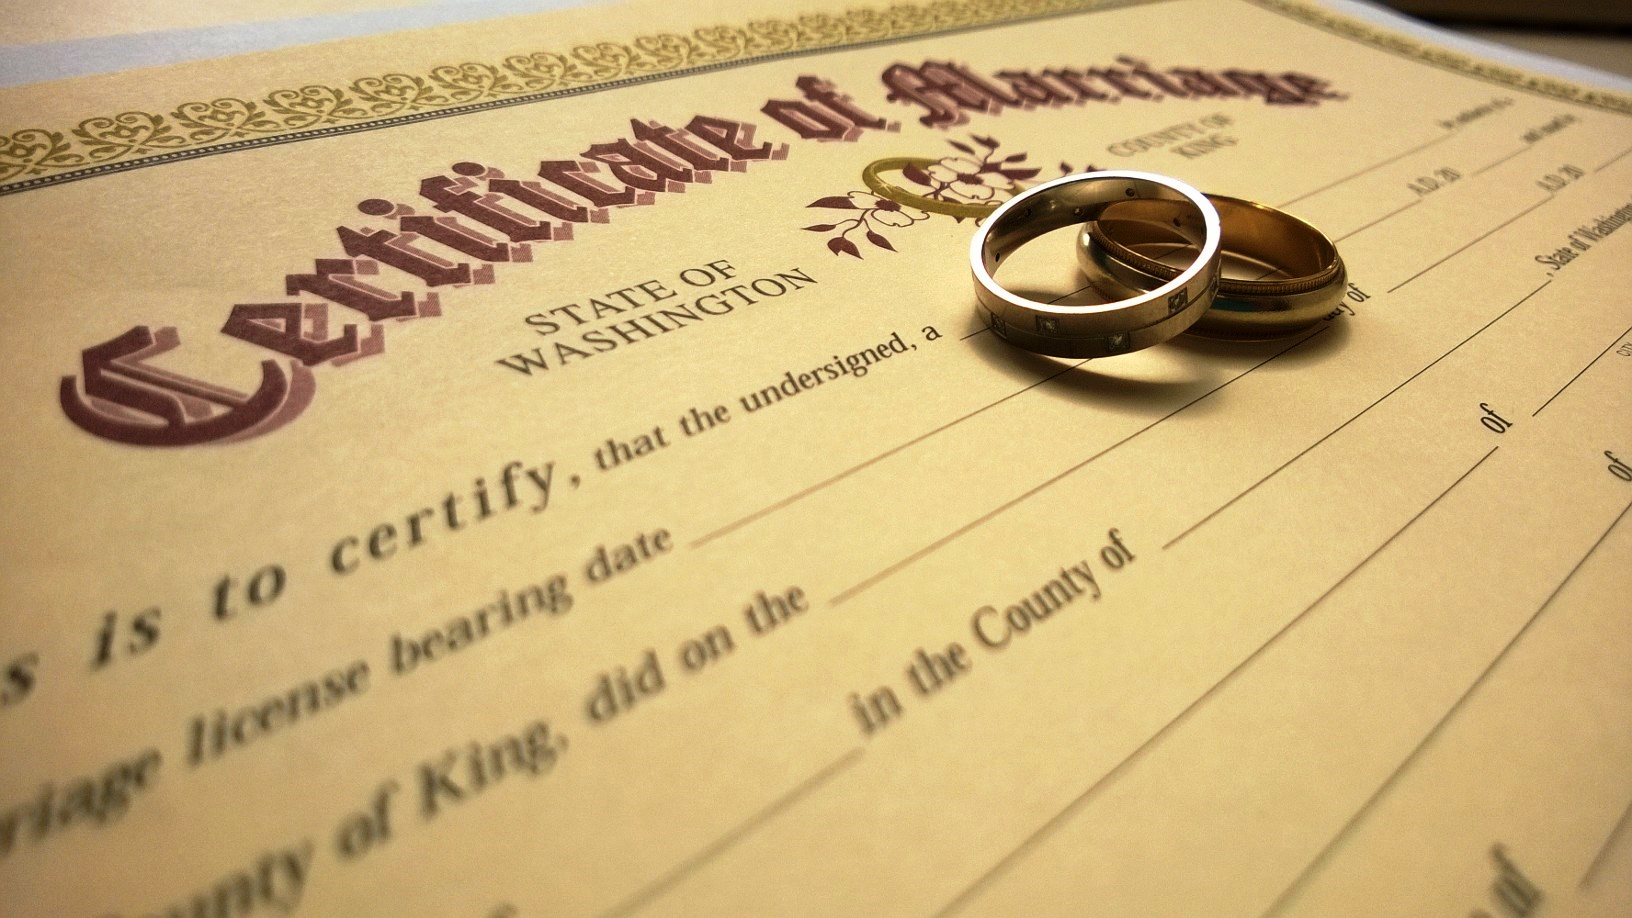 Marriage licensing - King County